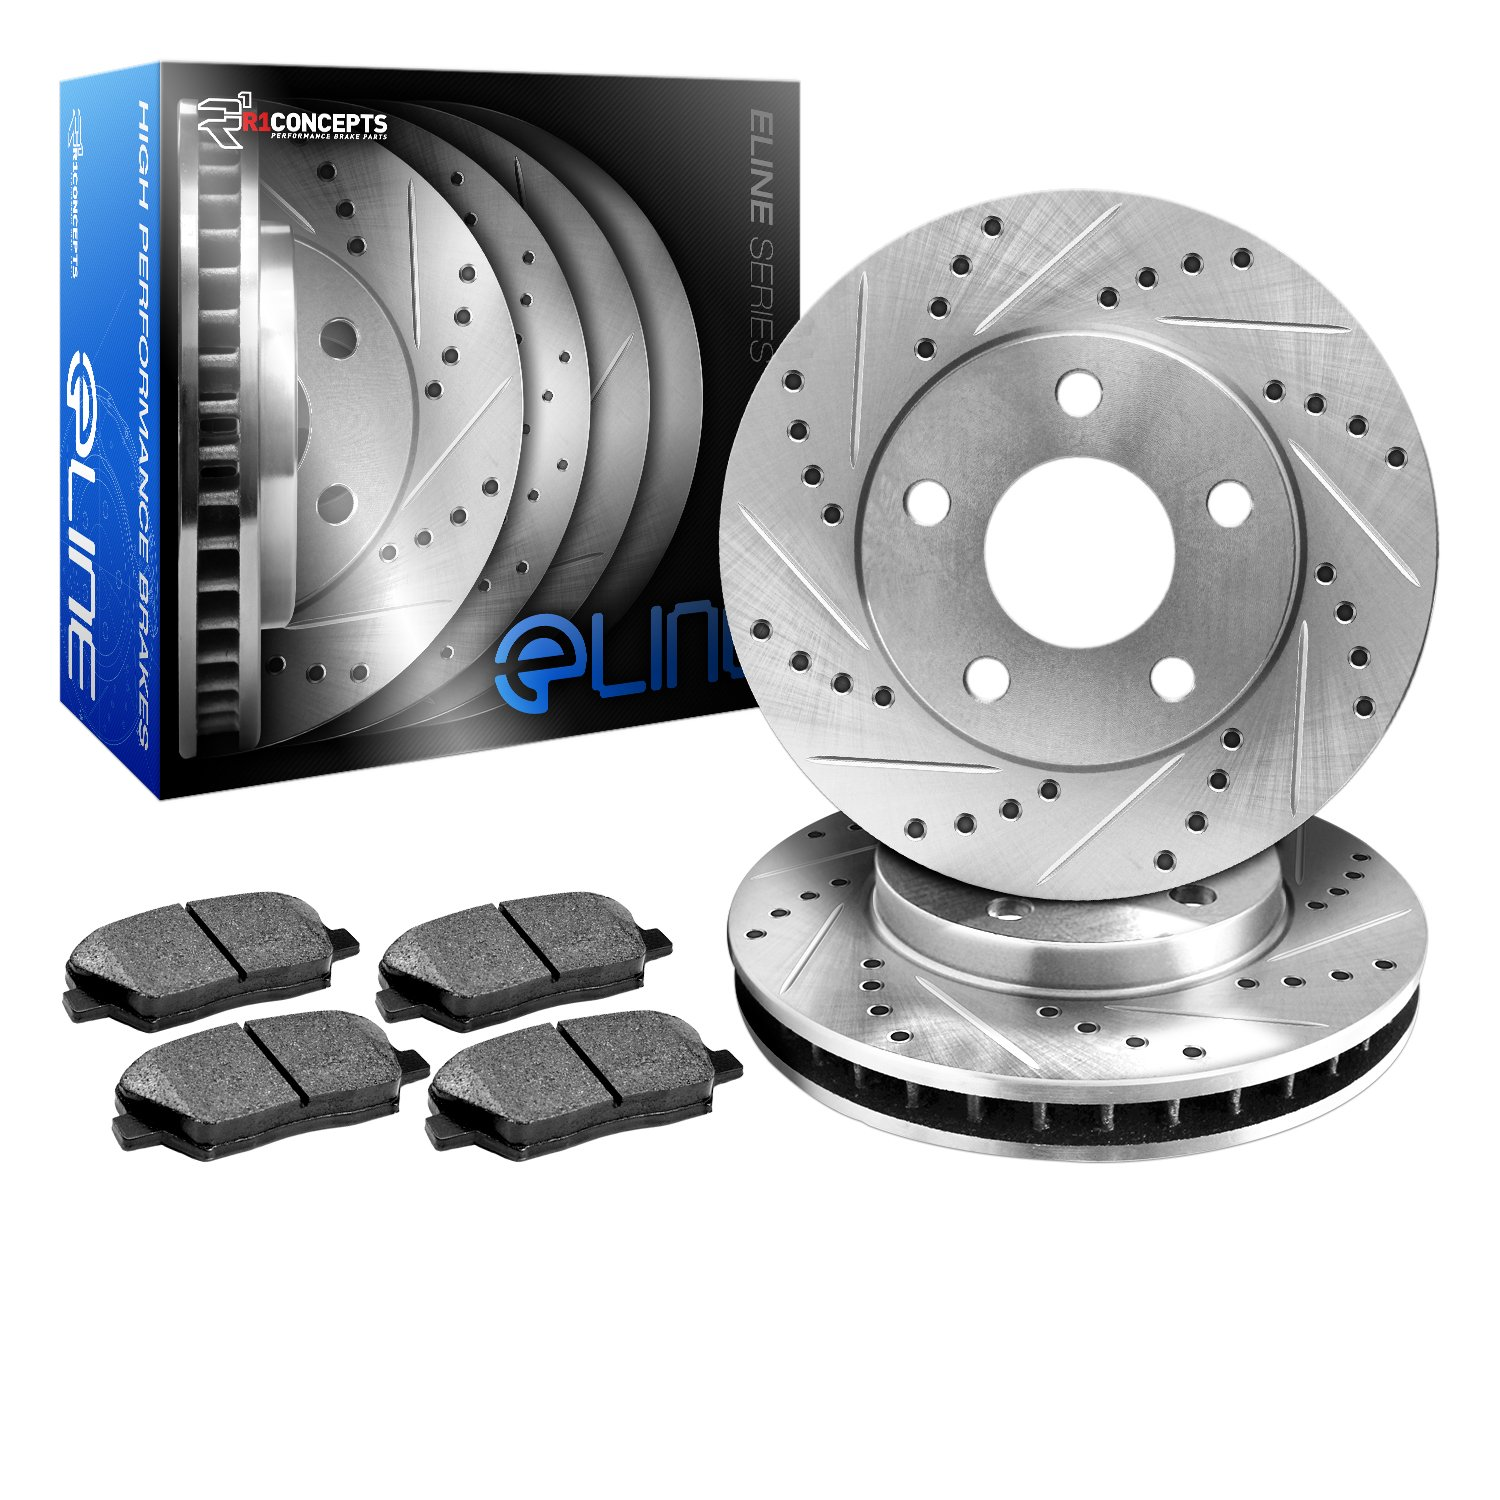 r1 concepts brake pads review